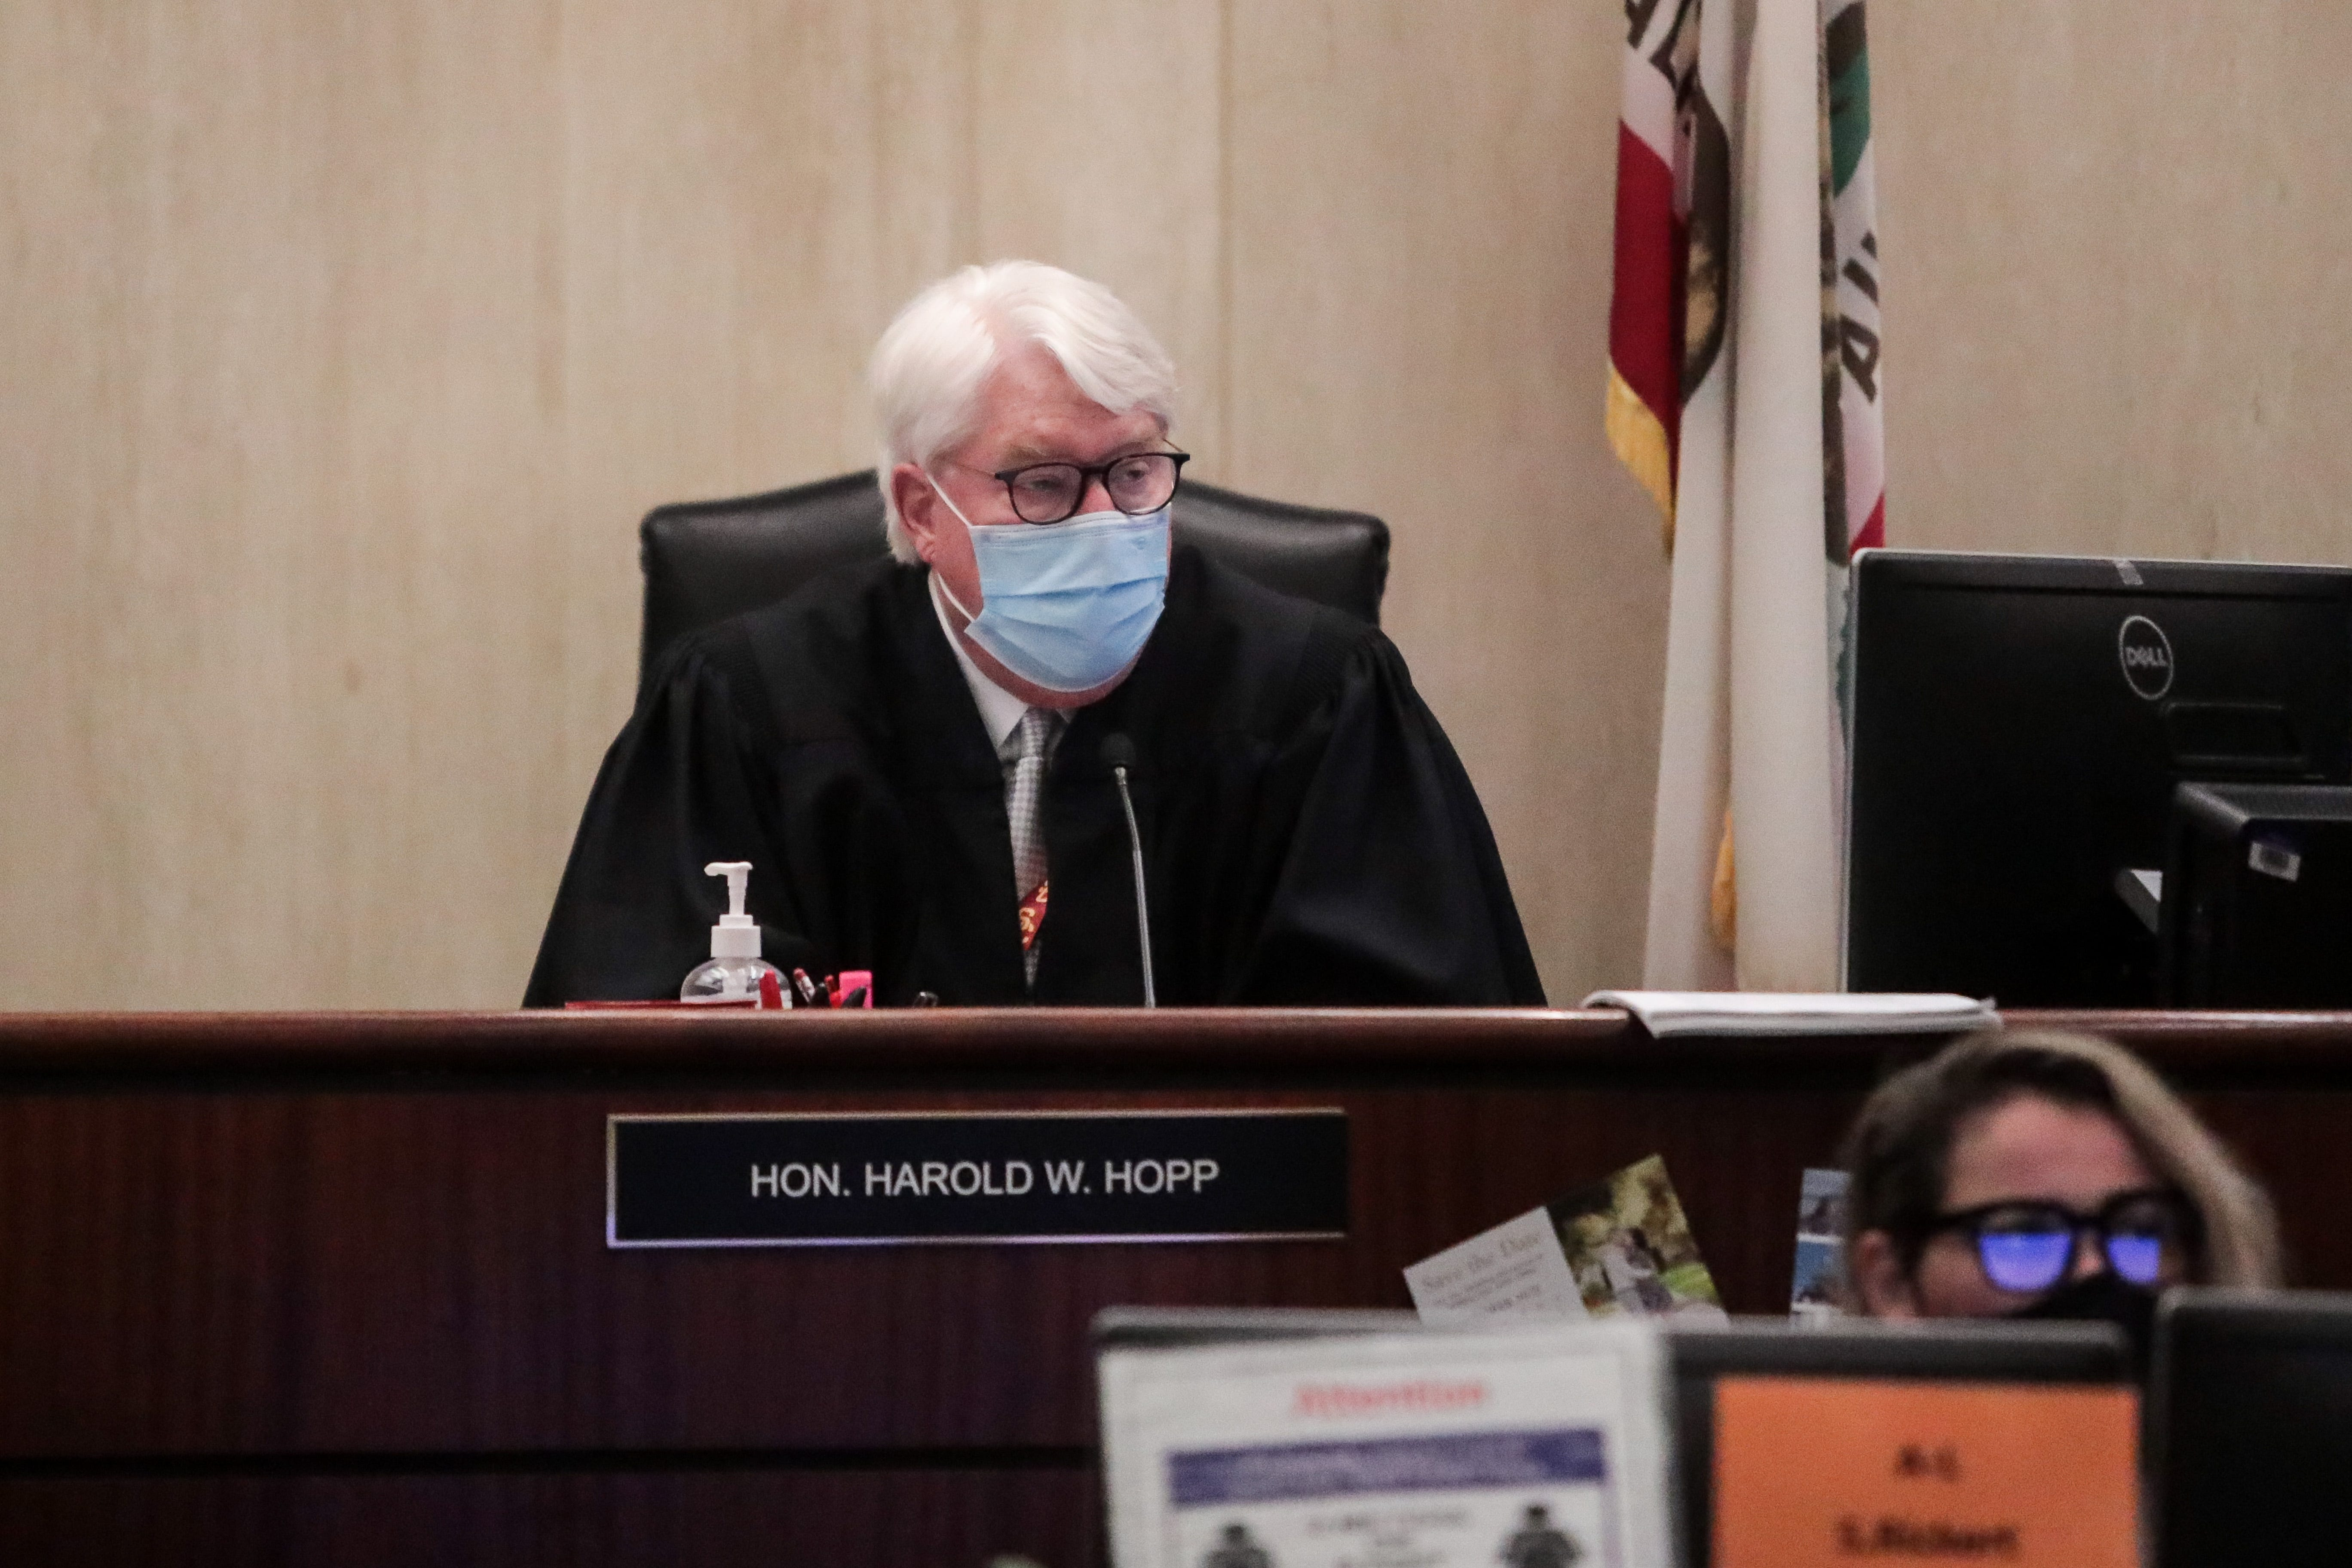 Riverside County Superior Court Judge Harold Hopp presides over a hearing in the Oscar Rodriguez case on March 4, 2021, at the Larson Justice Center in Indio.